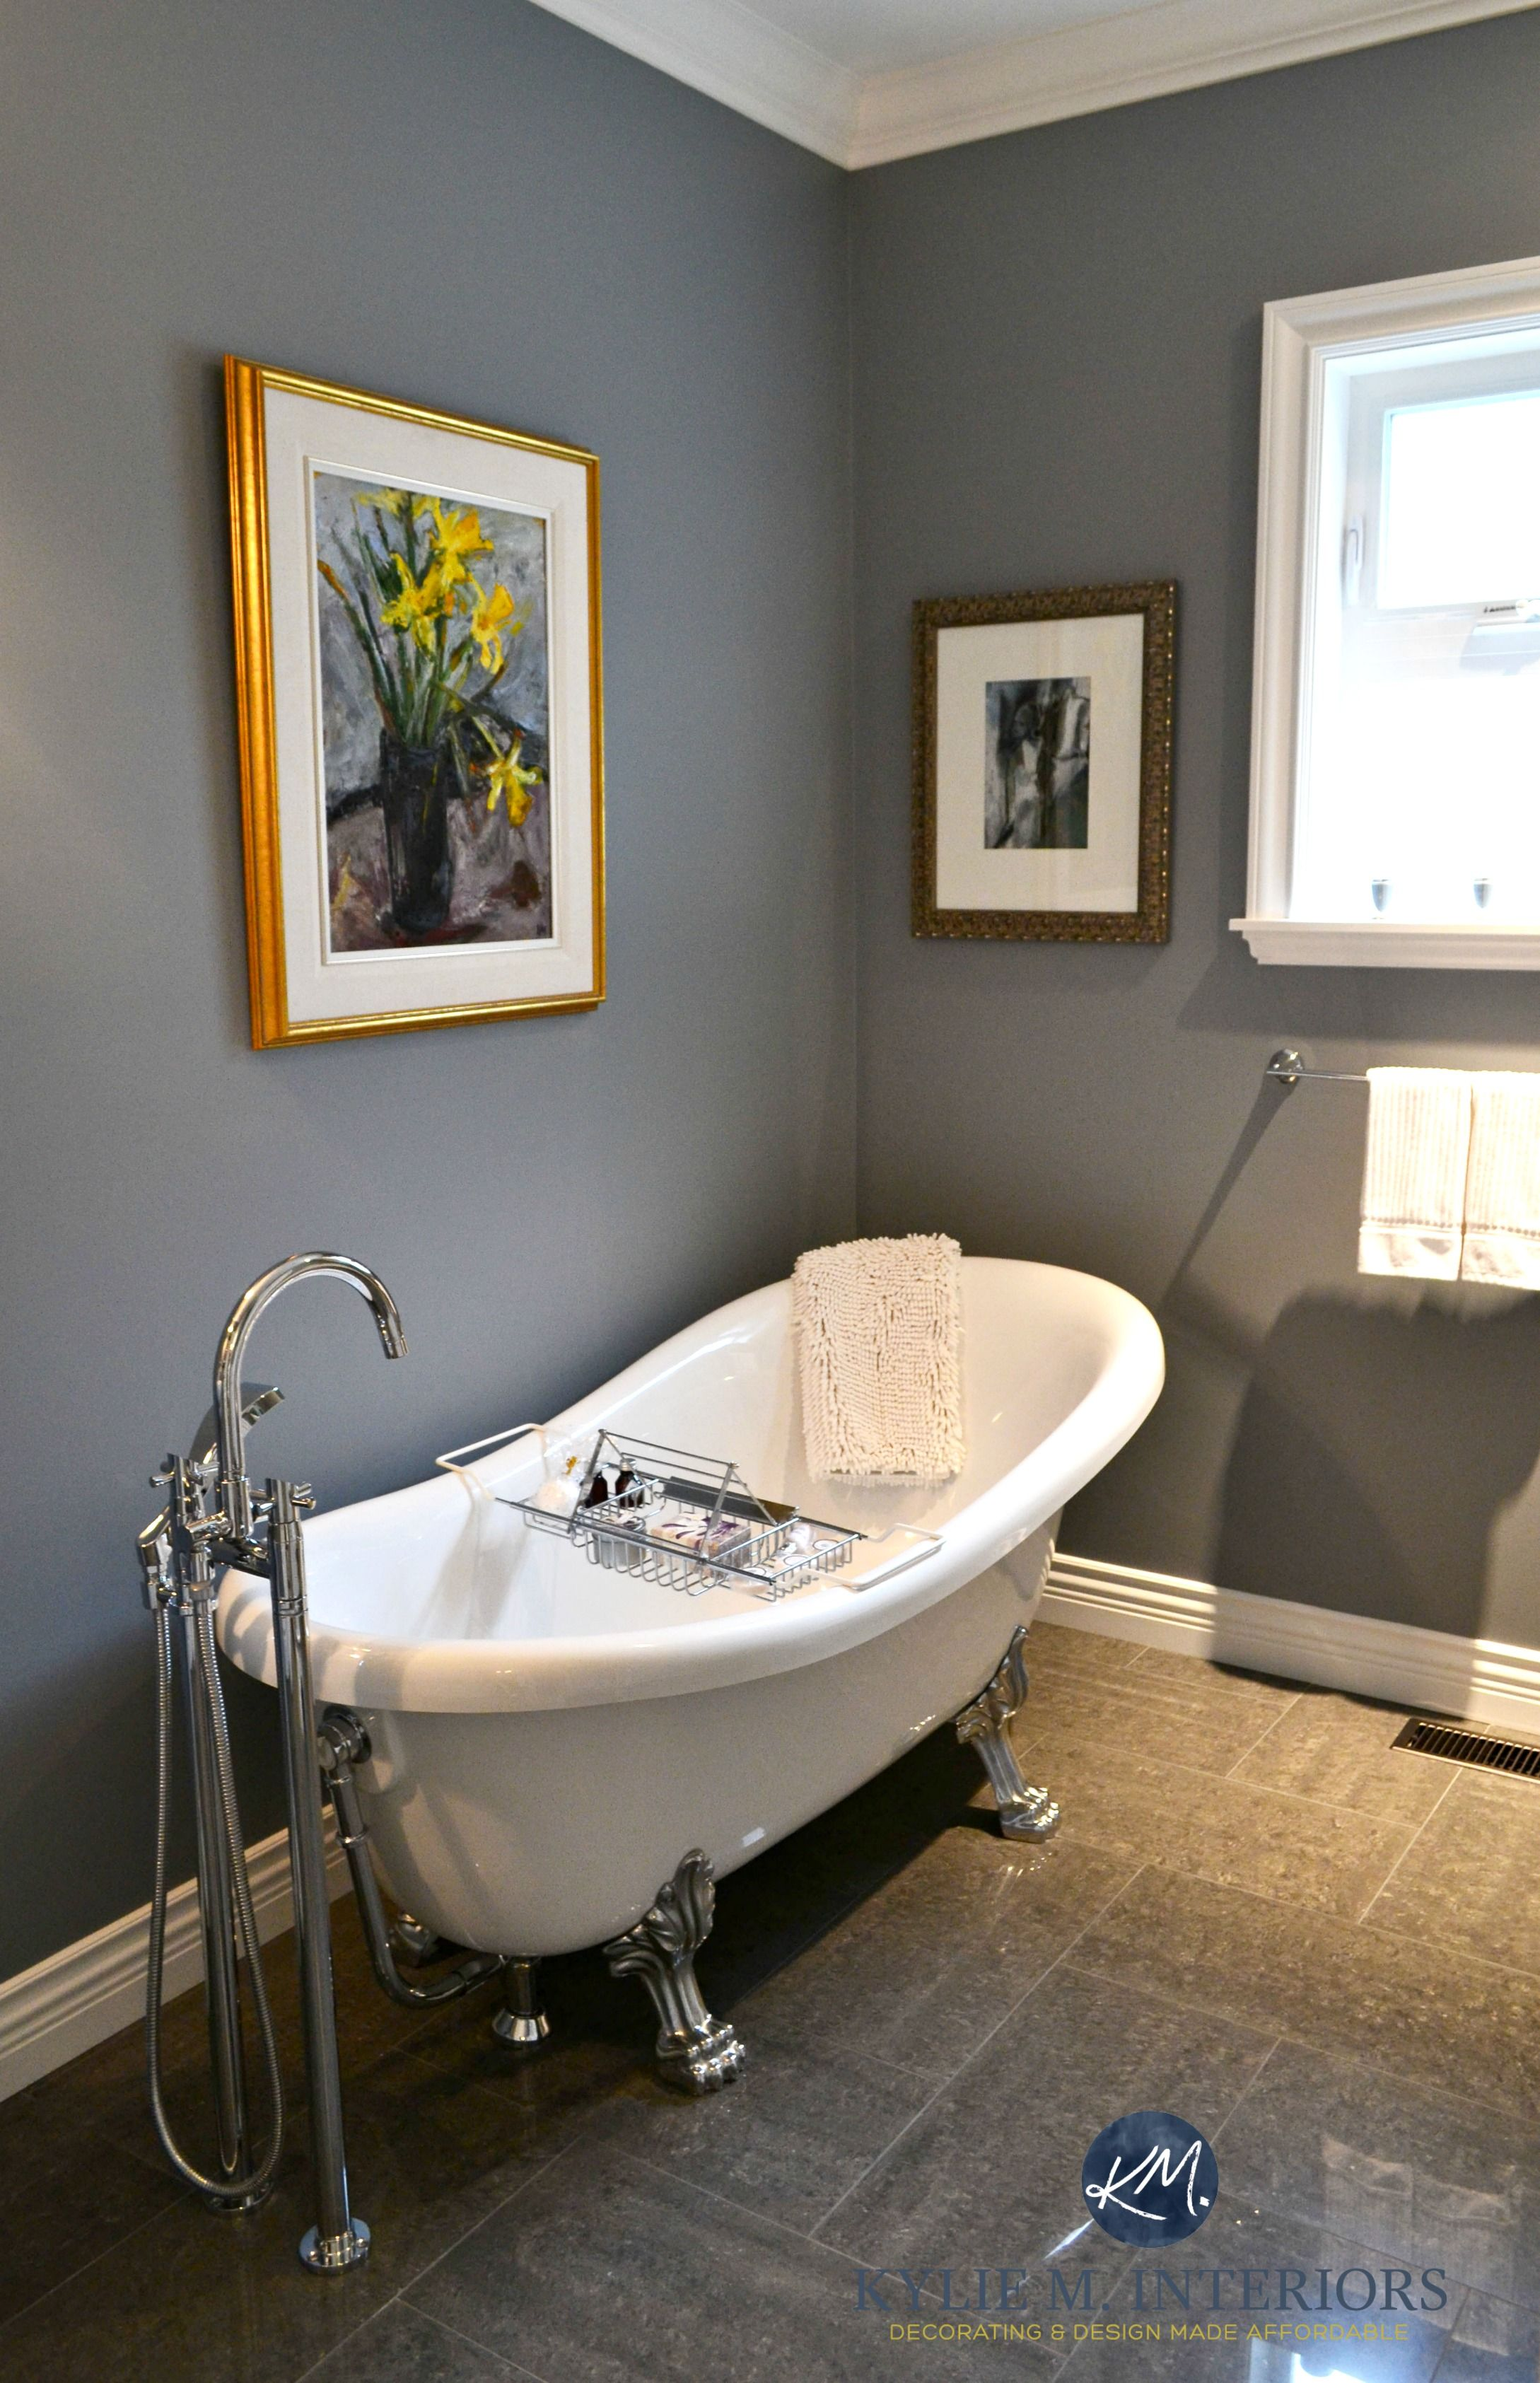 Benjamin moore dior gray is a great colour for home staging to add